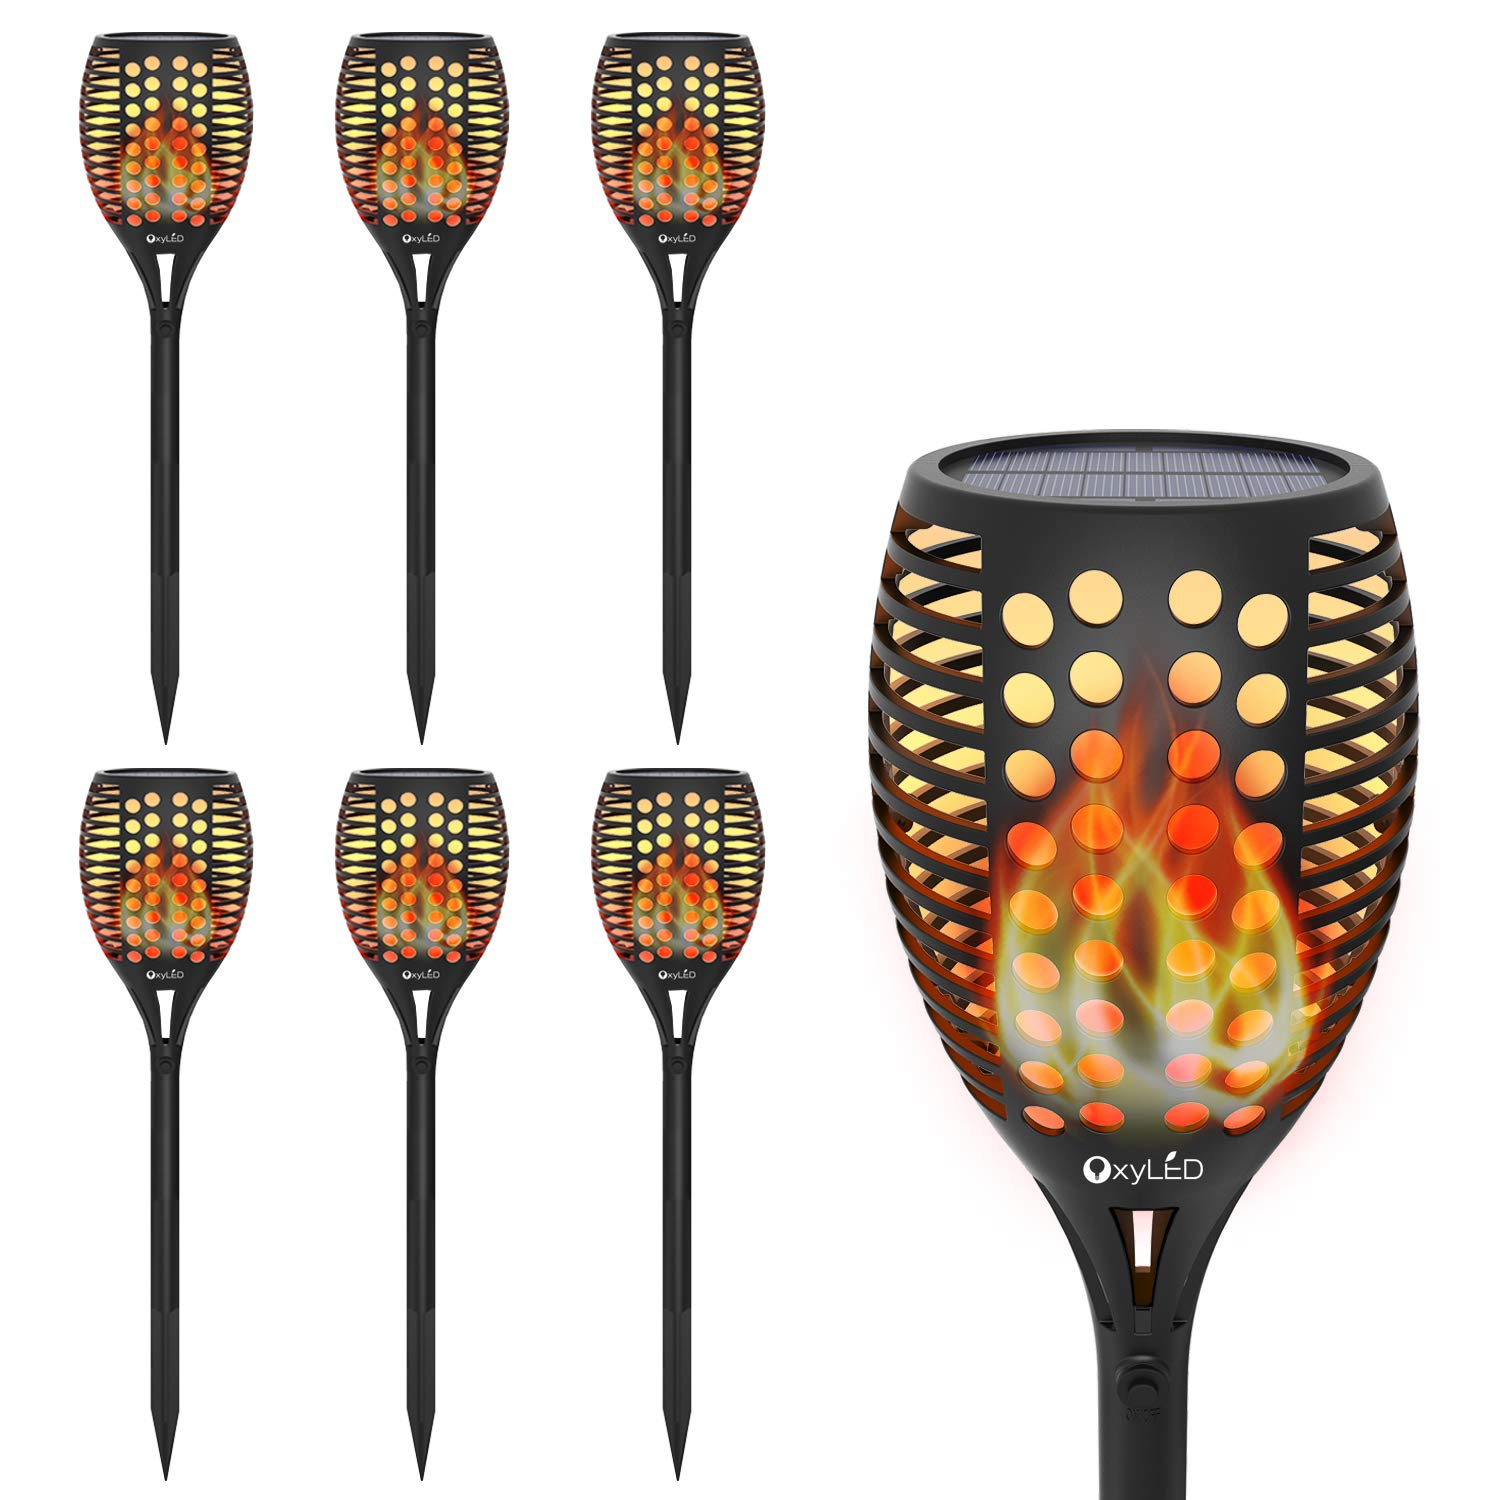 [6-Pack] Solar Torch Lights -Ideal for Halloween Christmas Decorations, OxyLED Garden Path Light with Realistic Dancing Flames, Waterproof Decorations Landscape Lighting With Auto On/Off Dusk to Dawn by OxyLED